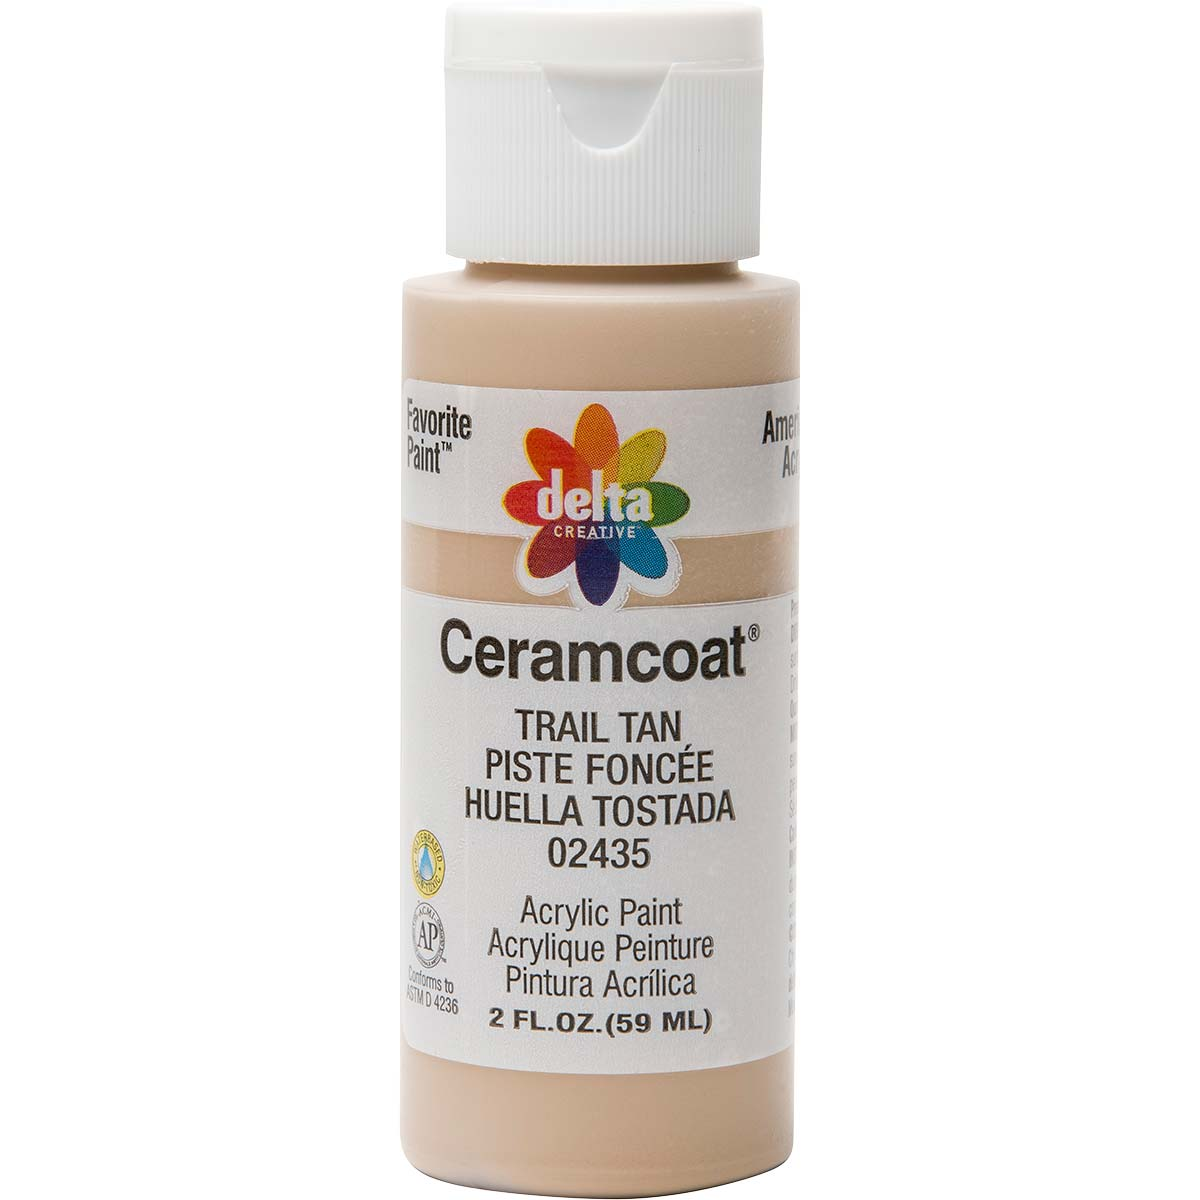 Delta Ceramcoat ® Acrylic Paint - Trail Tan, 2 oz. - 024350202W